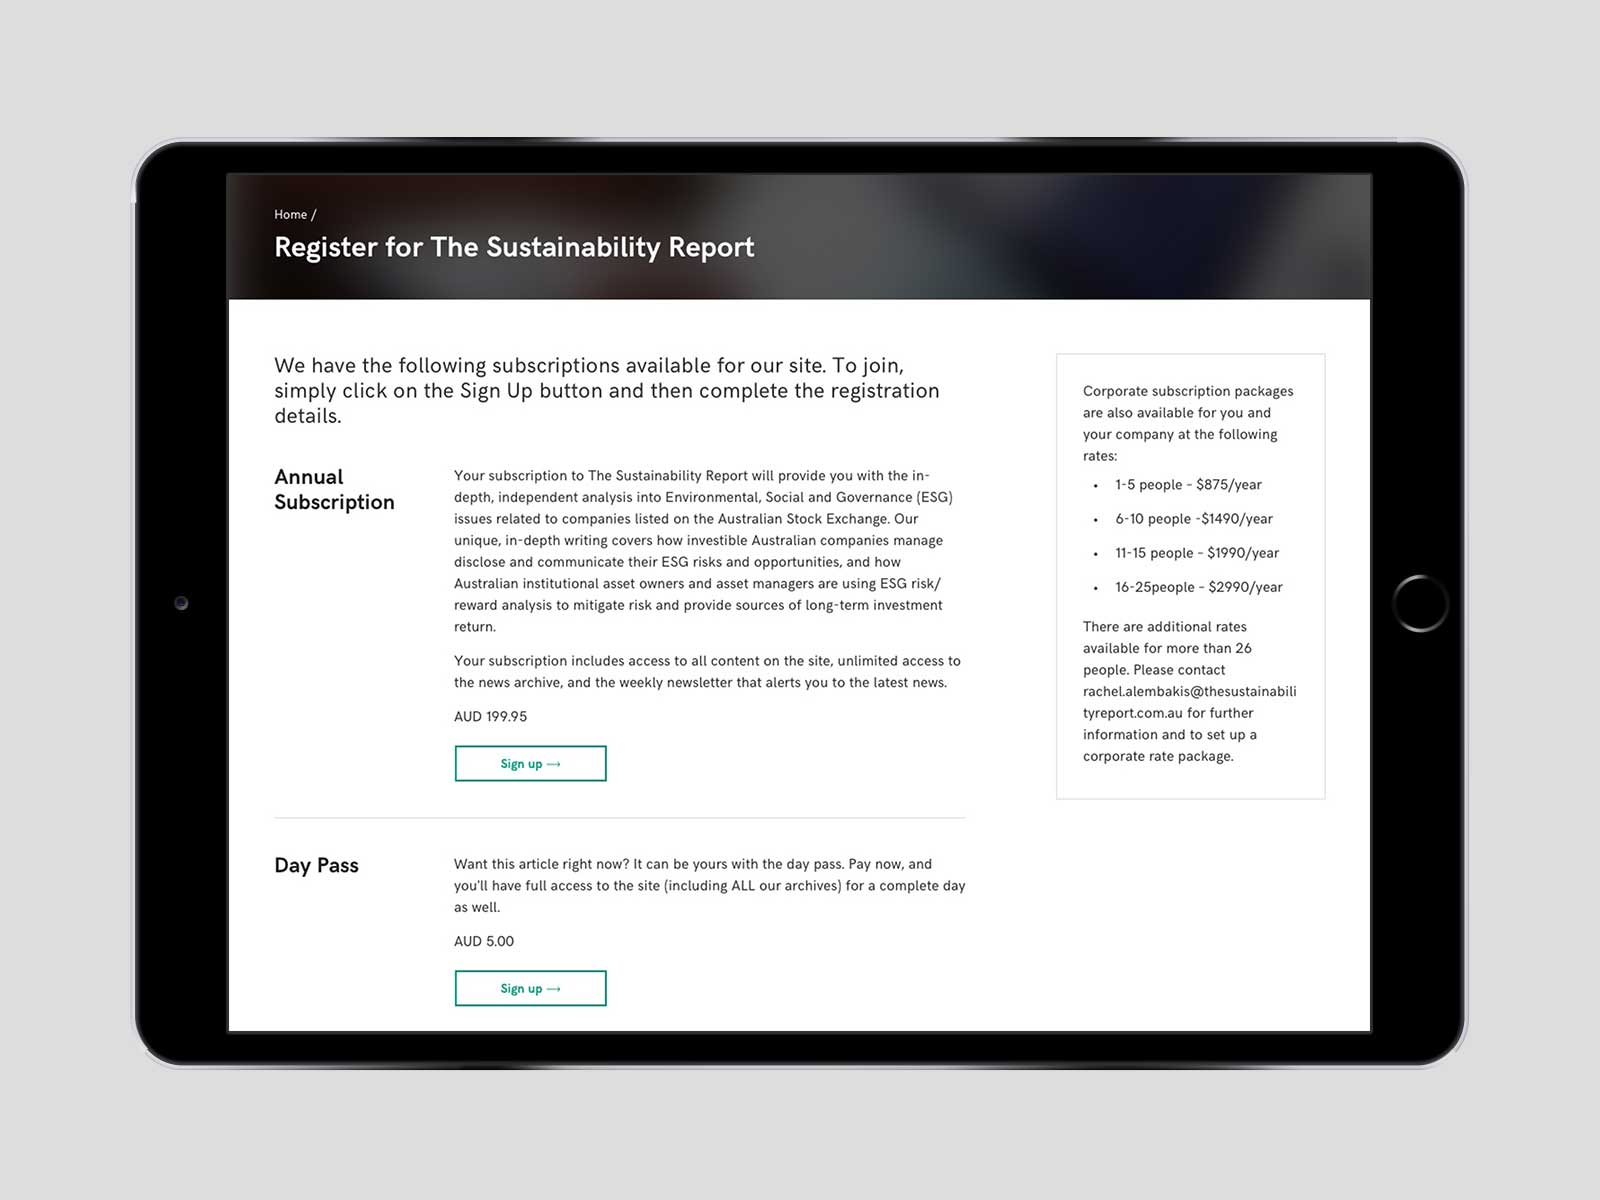 The Sustainability Report responsive website design for registration menu on iPad in landscape view